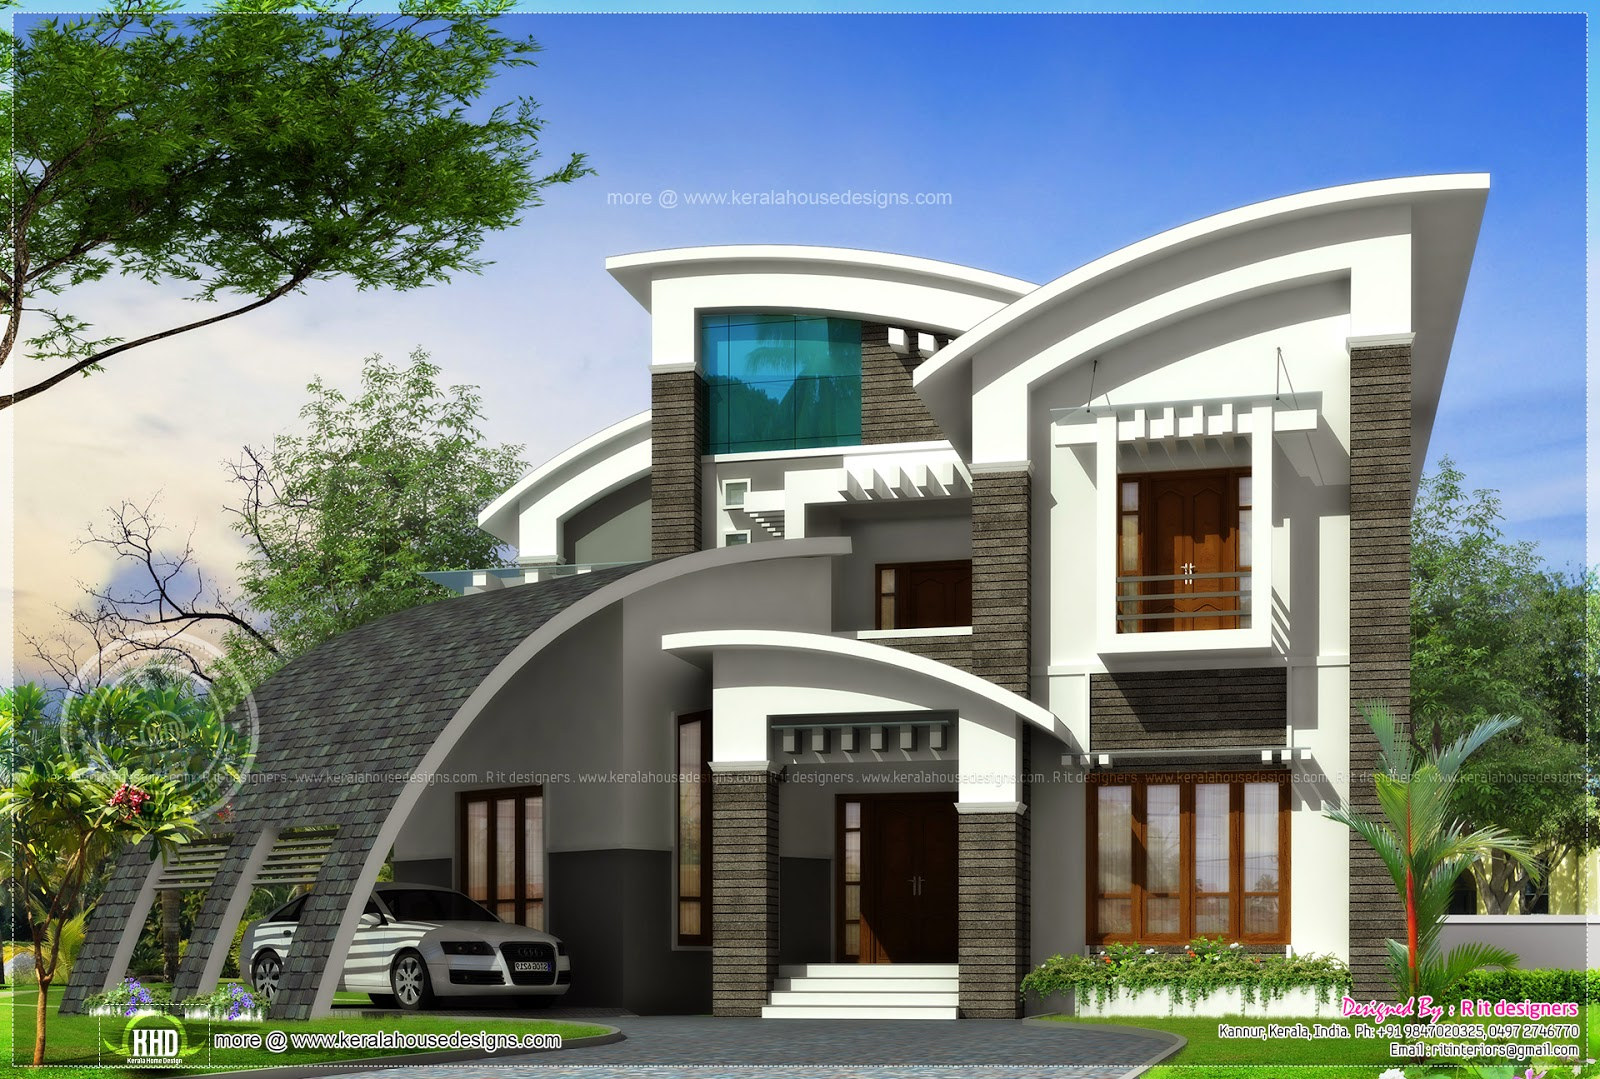 Super luxury ultra modern house design kerala home for Luxury floor plans with pictures